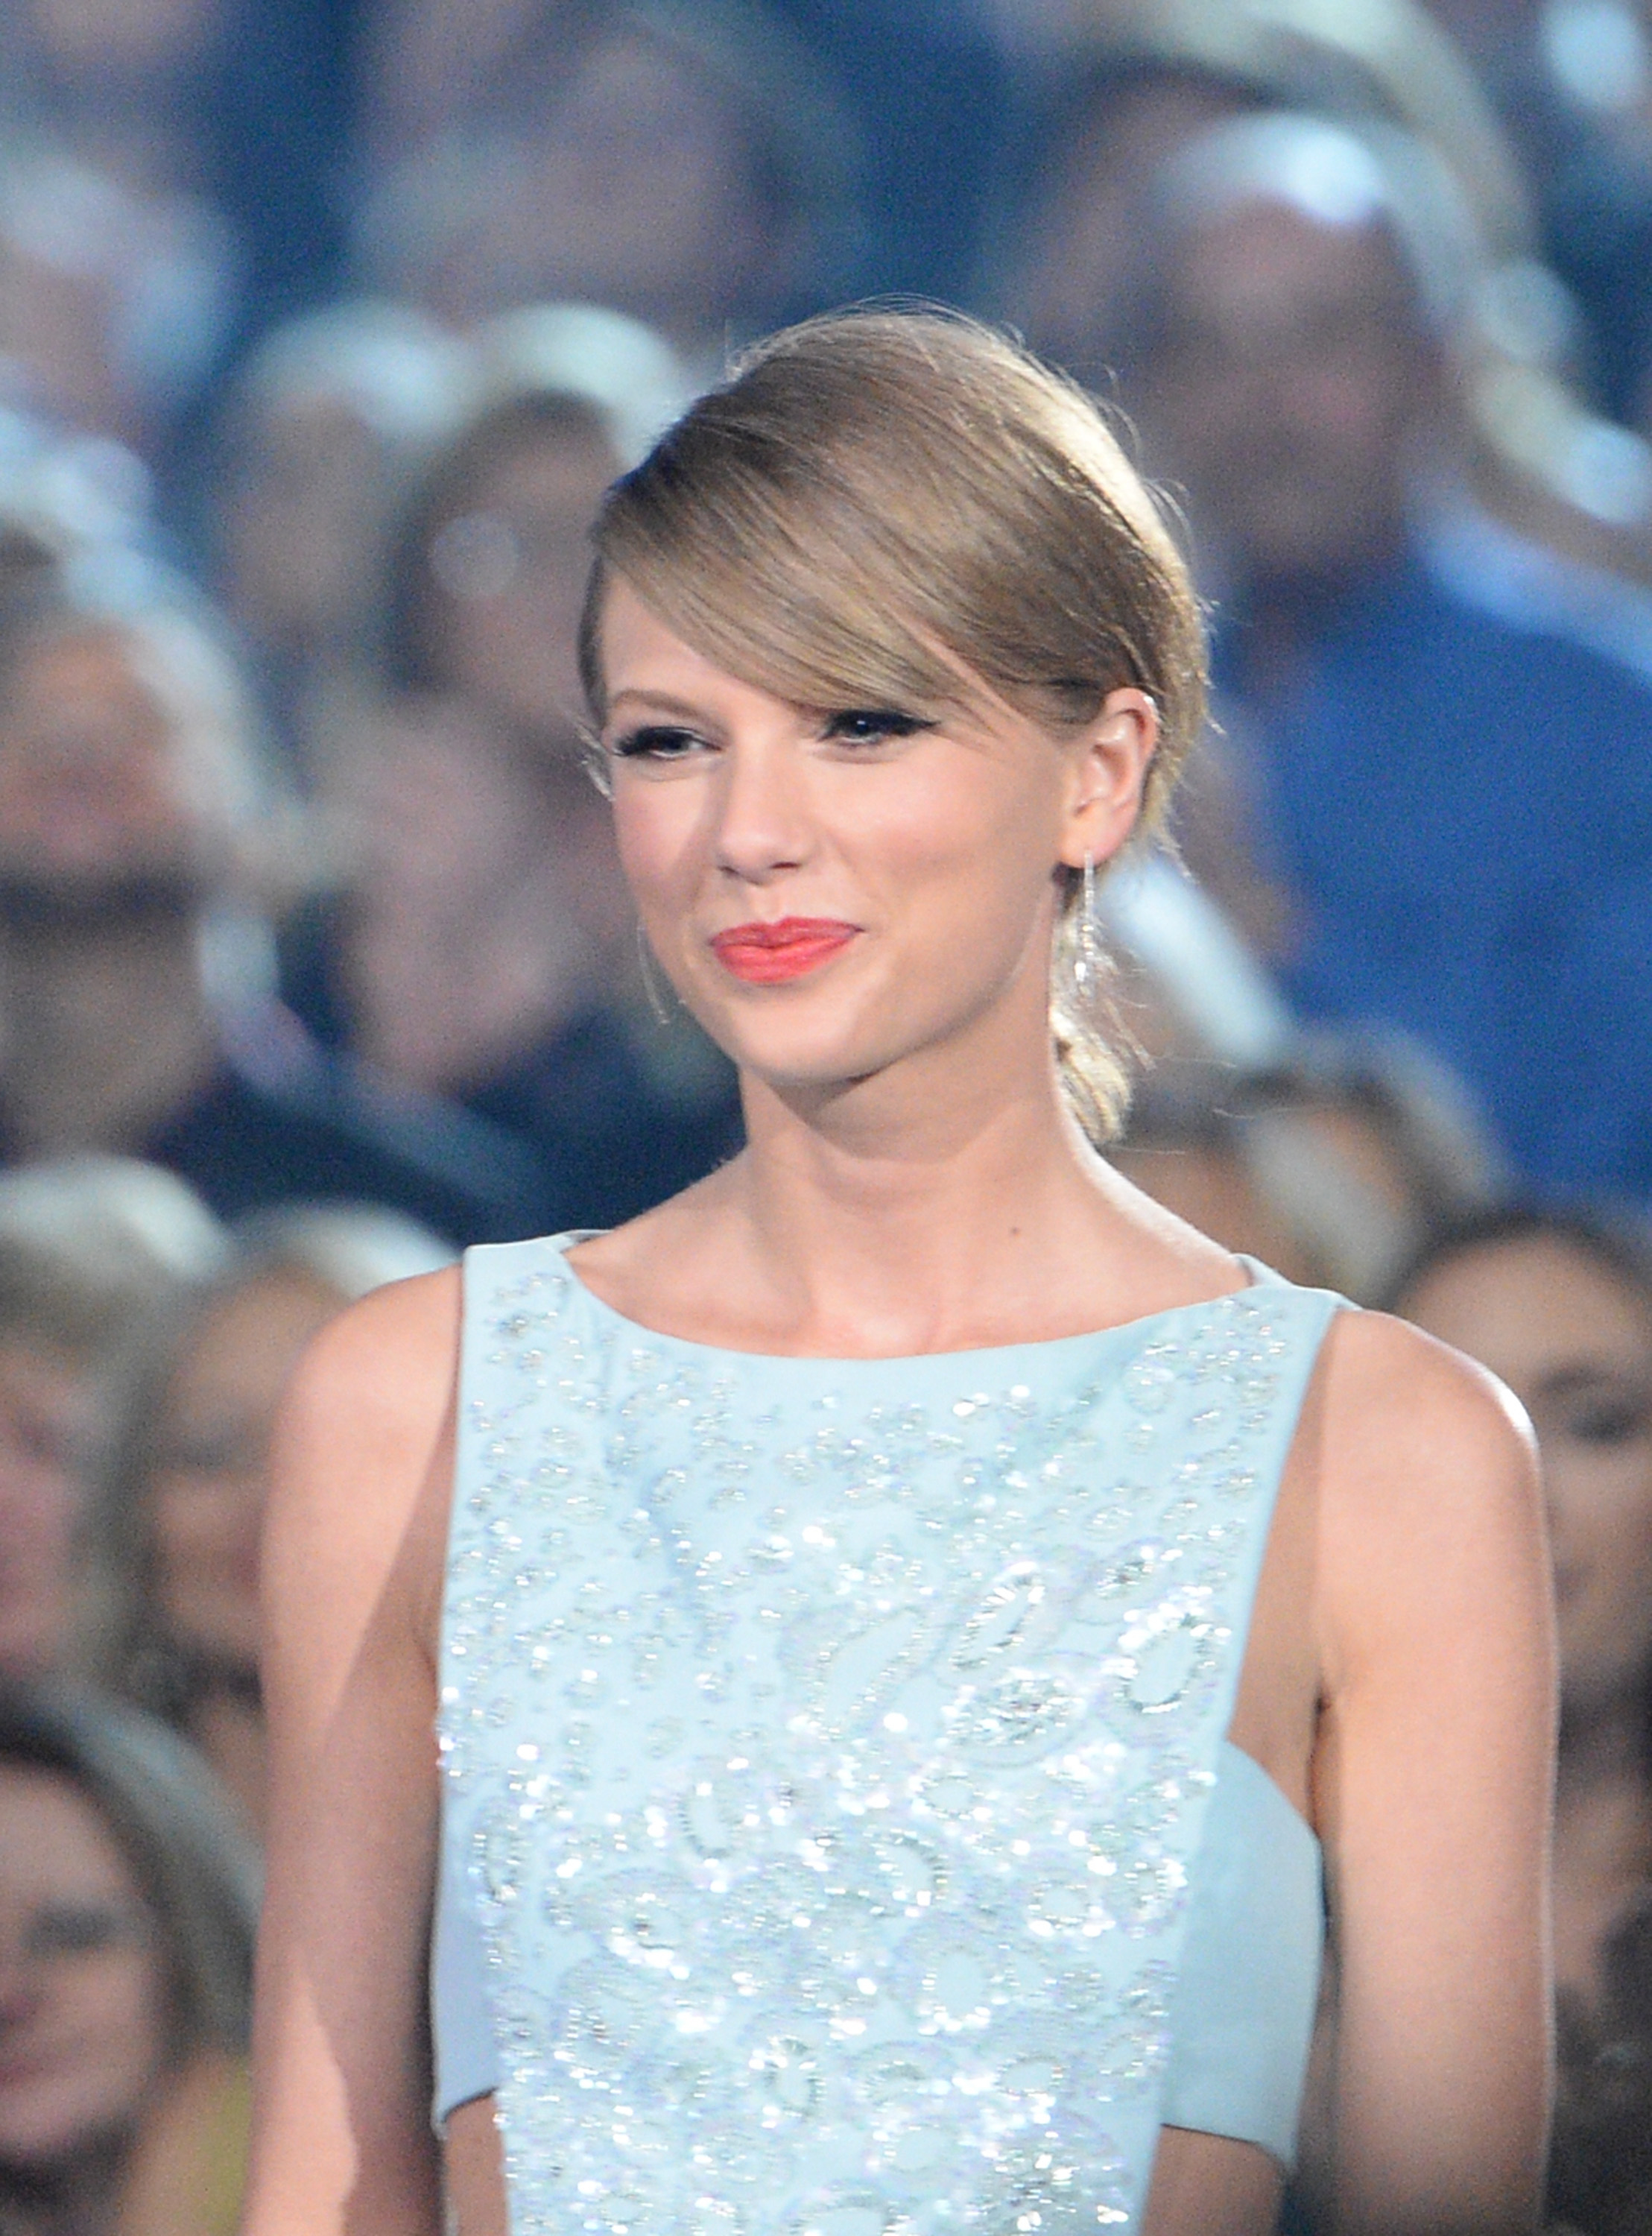 Taylor Swift onstage during the 50th Academy Of Country Music Awards at AT&T Stadium on April 19, 2015 in Arlington, Texas.